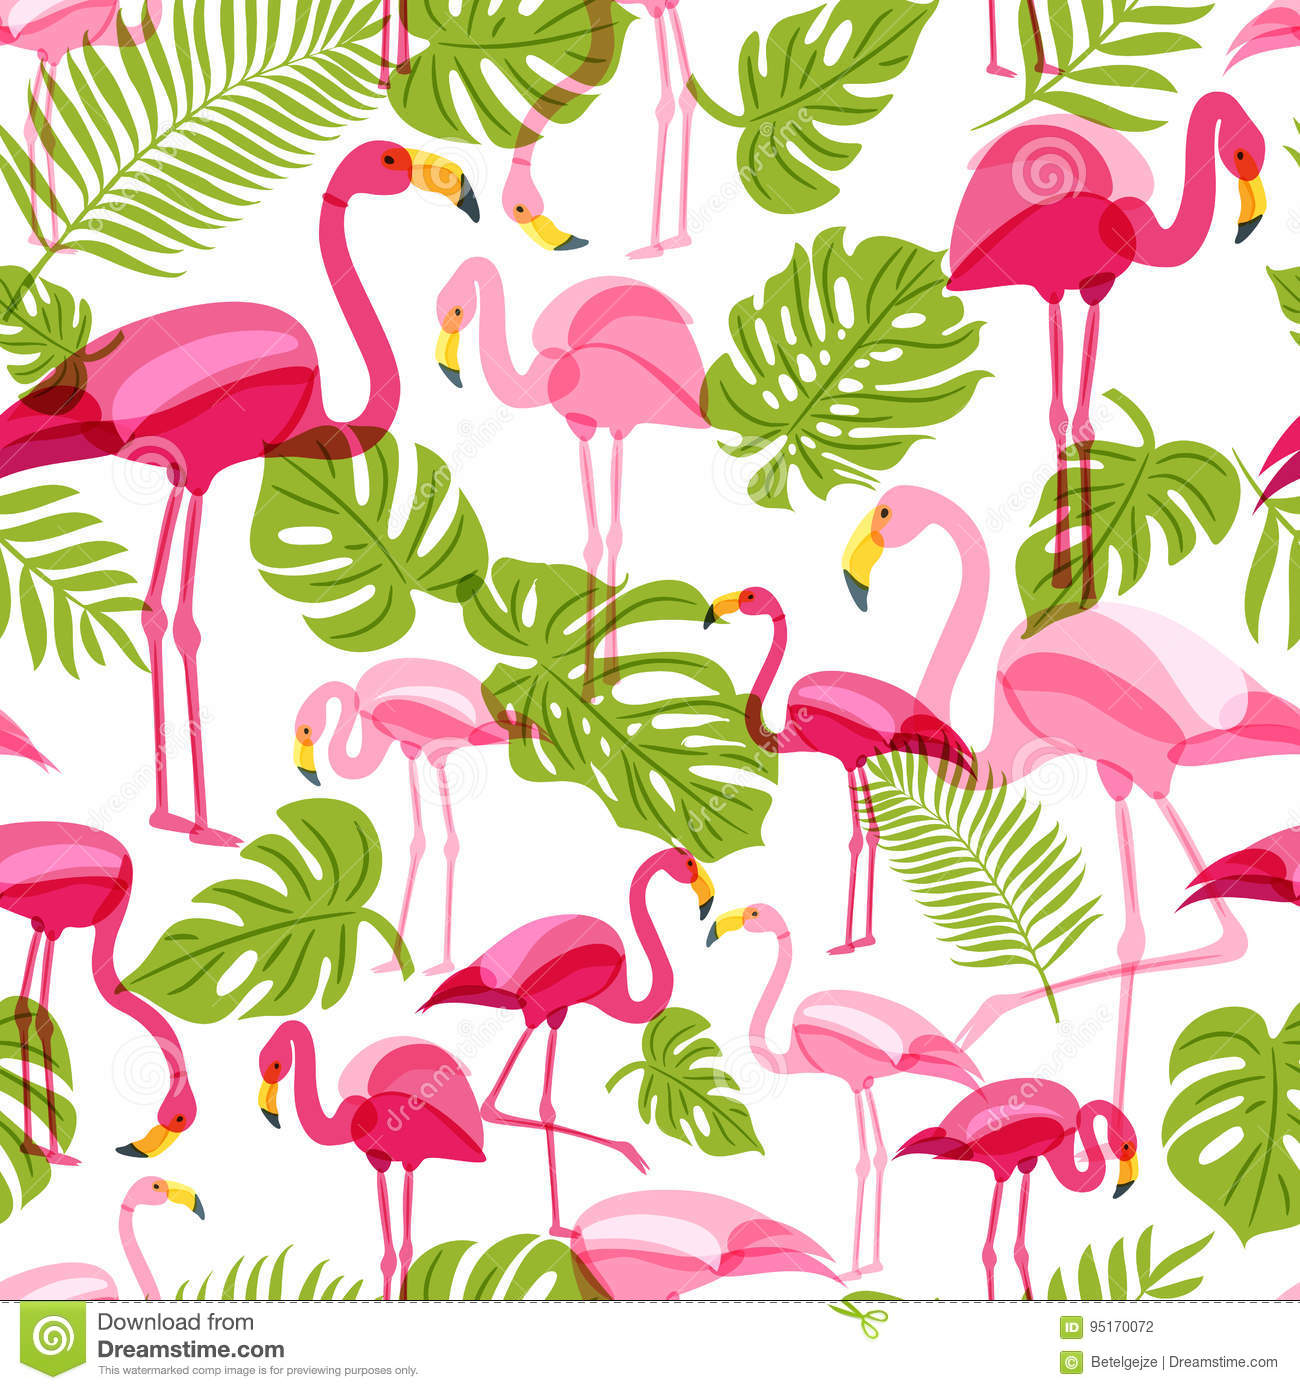 a67f01f55 Vector seamless pattern with pink flamingo and green palm tree leaves. Summer  tropical background.